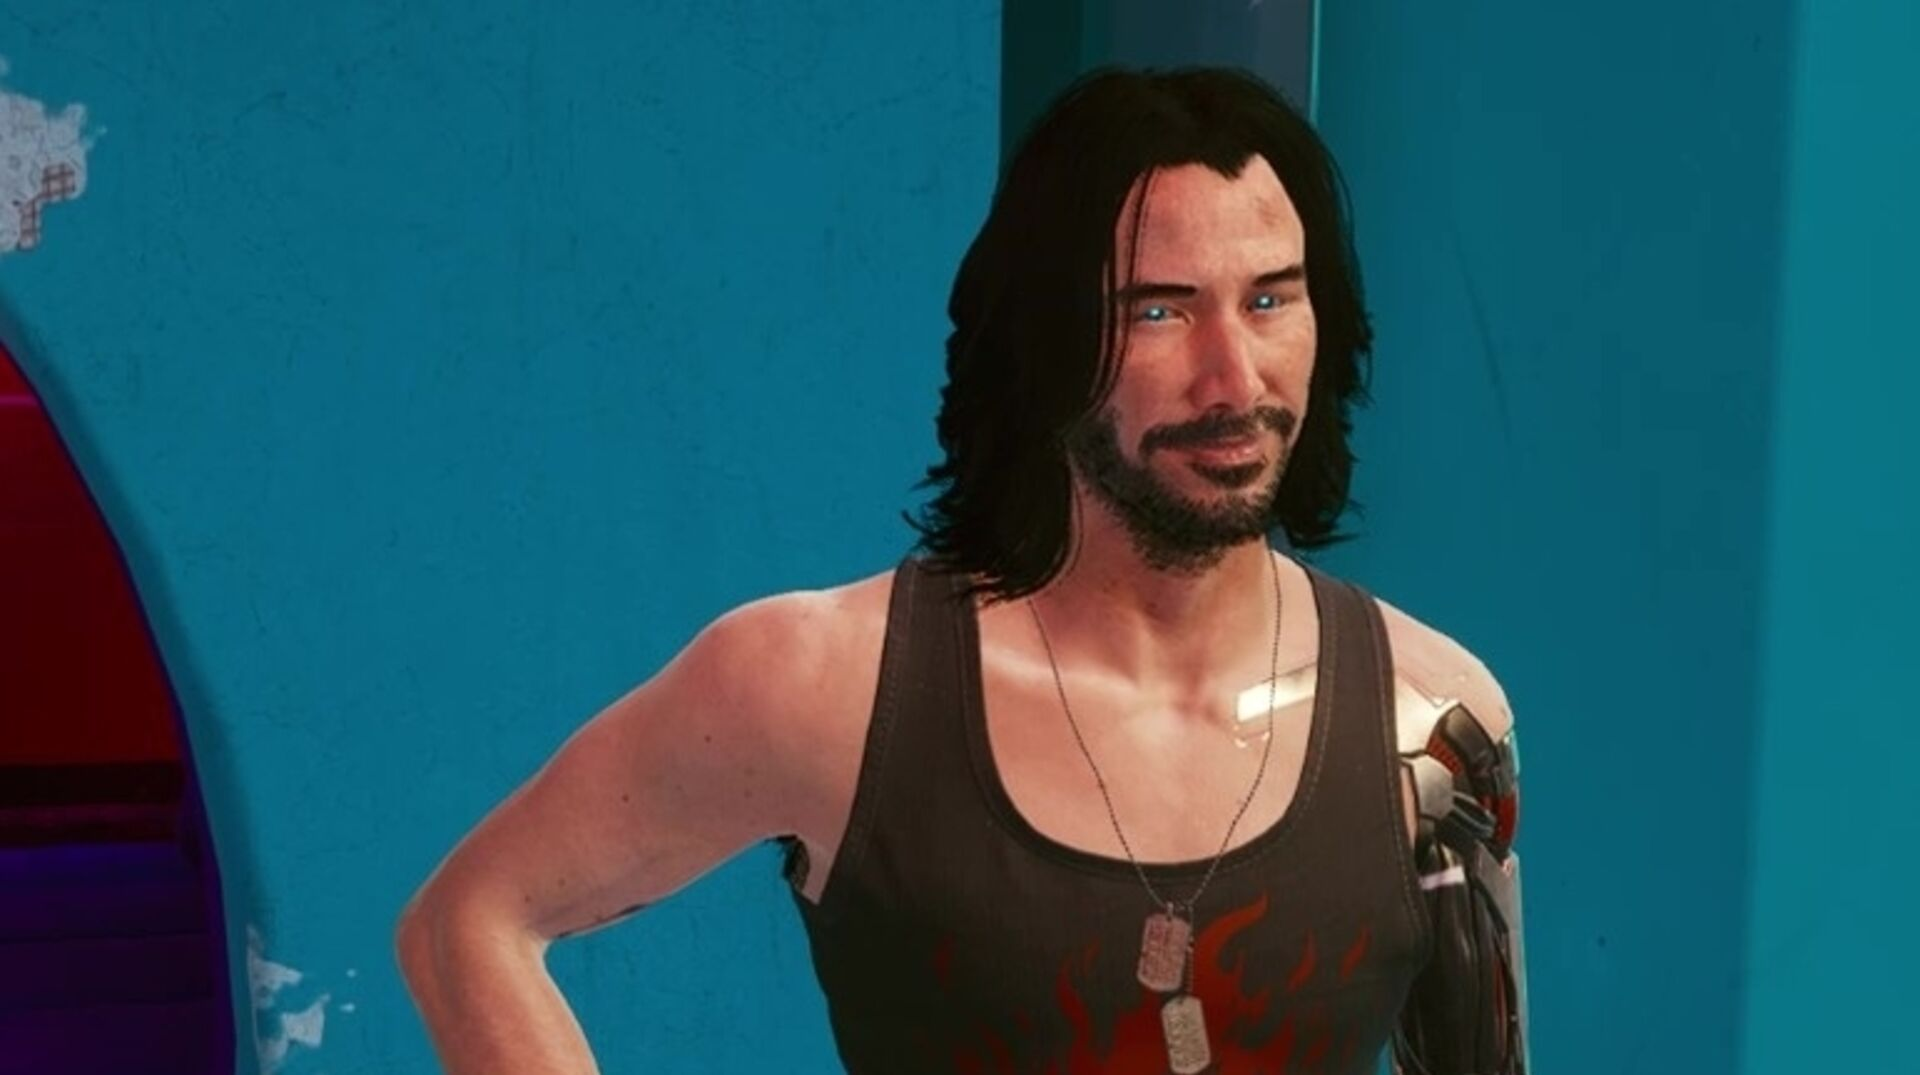 People are modding Cyberpunk 2077 to have sex with Keanu Reeves' character  • Eurogamer.net